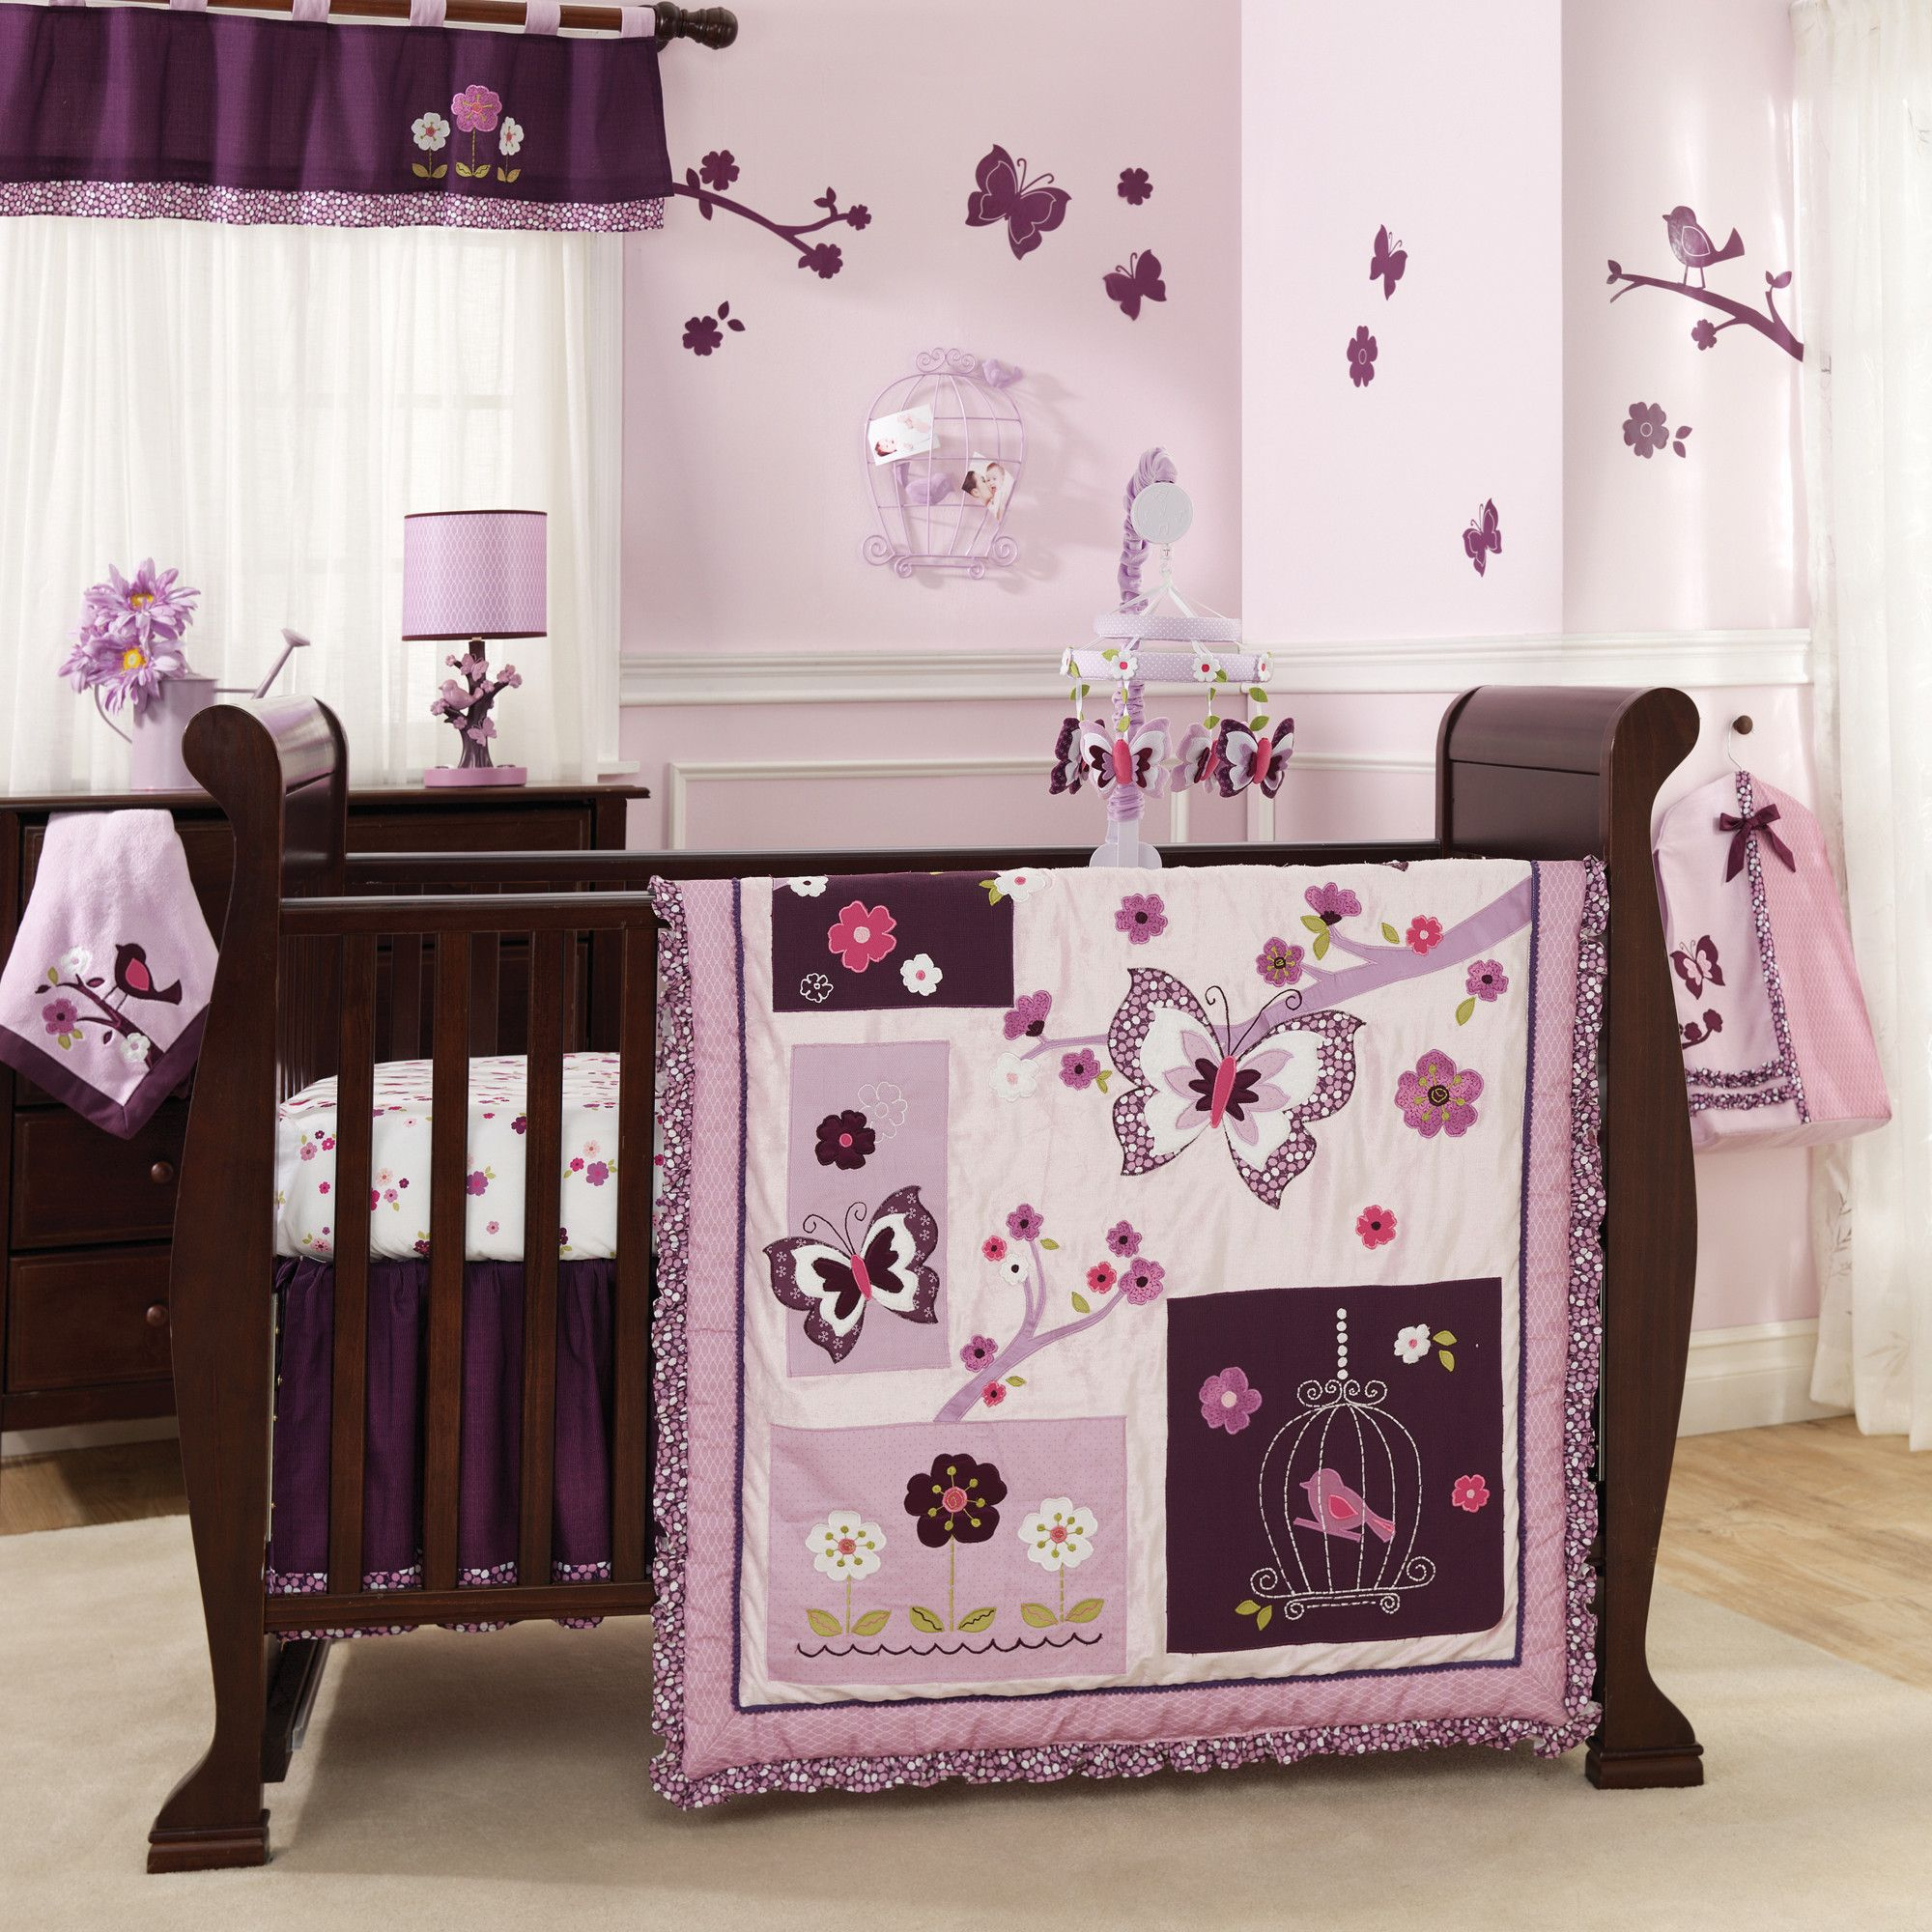 Plumberry baby crib bedding set by lambs ivy lambs ivy